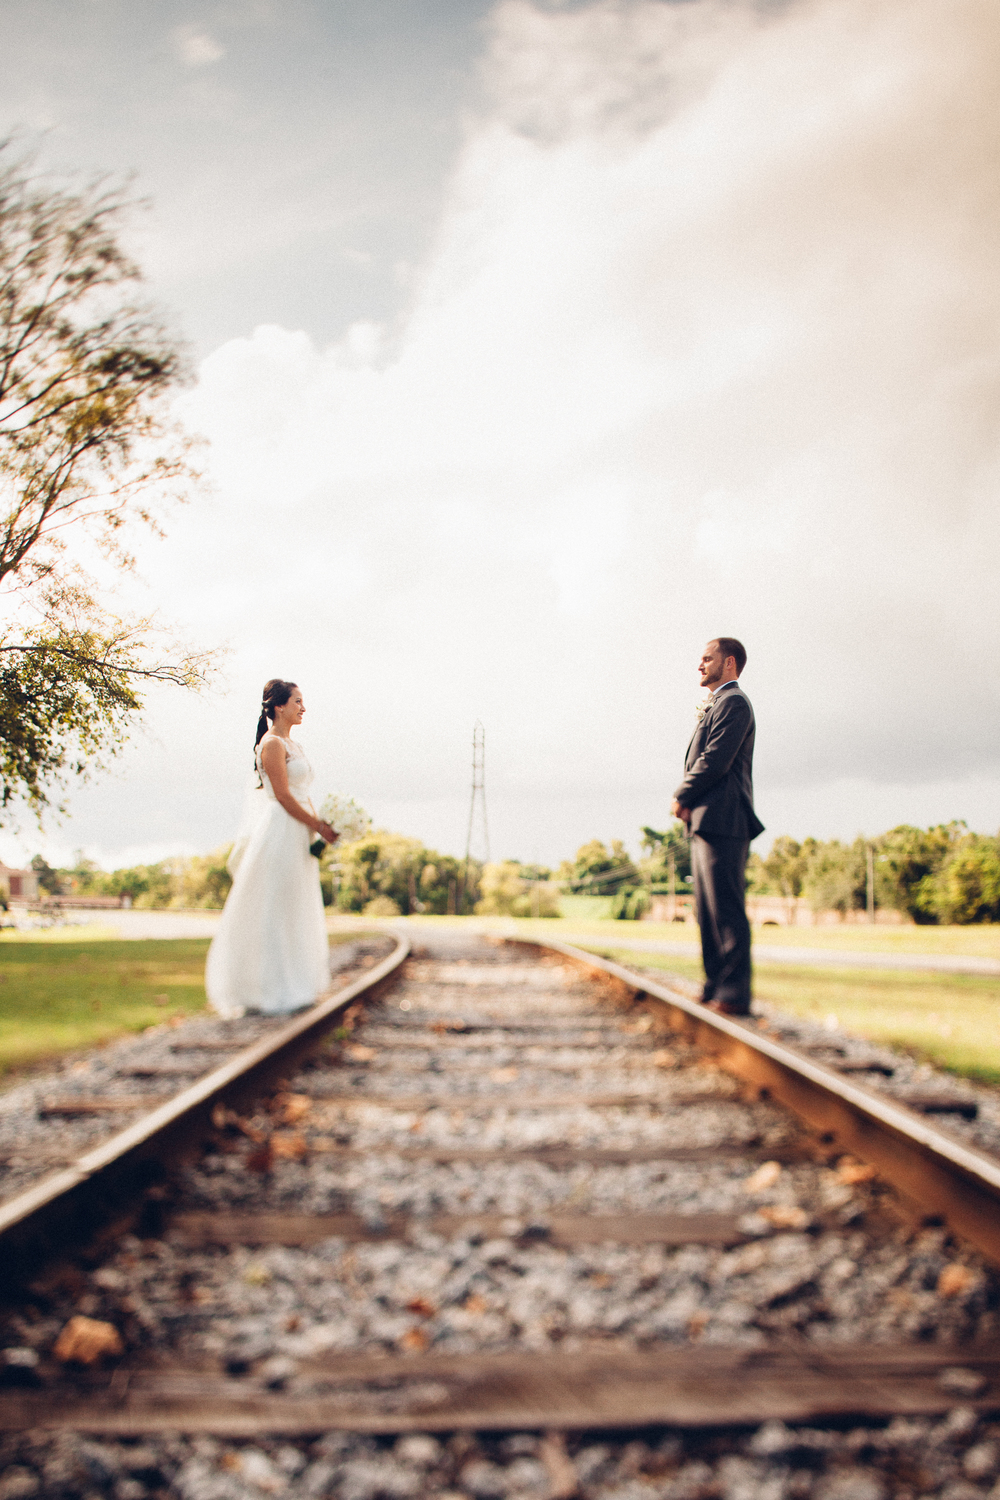 real-wedding-at-georgia-state-railroad-museum